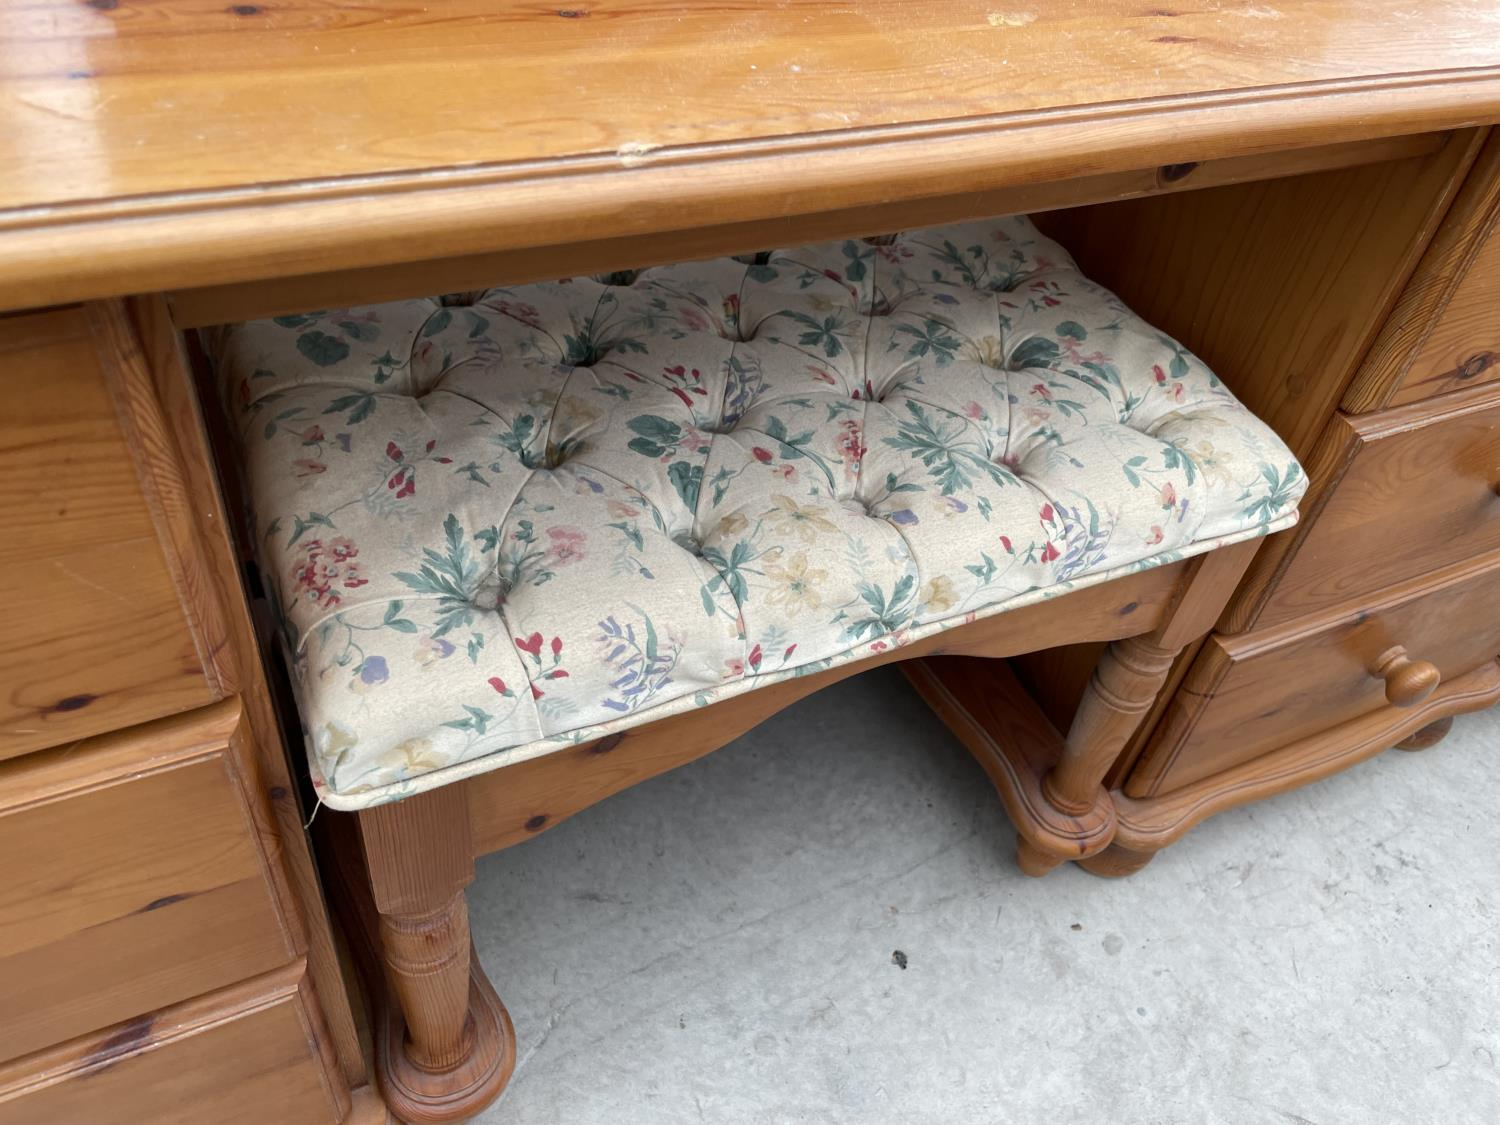 A MODERN PINE DRESSING TABLE WITH MIRROR, STOOL AND TWO BEDSIDE TABLES - Image 5 of 7